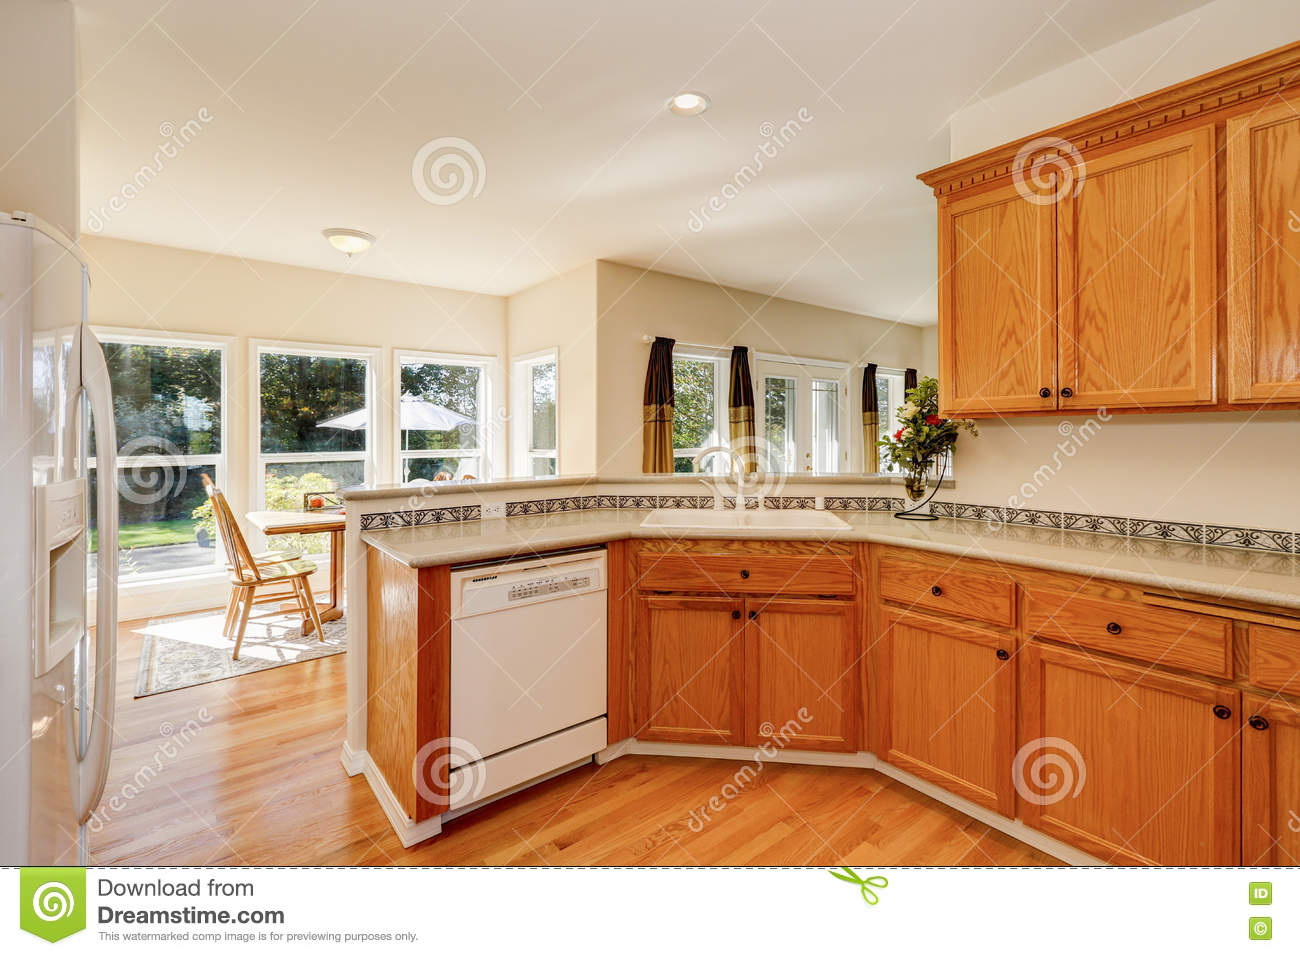 Light Brown Kitchen Cabinets And White Appliances. Northwest, Estate.  Royalty Free Stock Photo. Download Light Brown Kitchen Cabinets ...